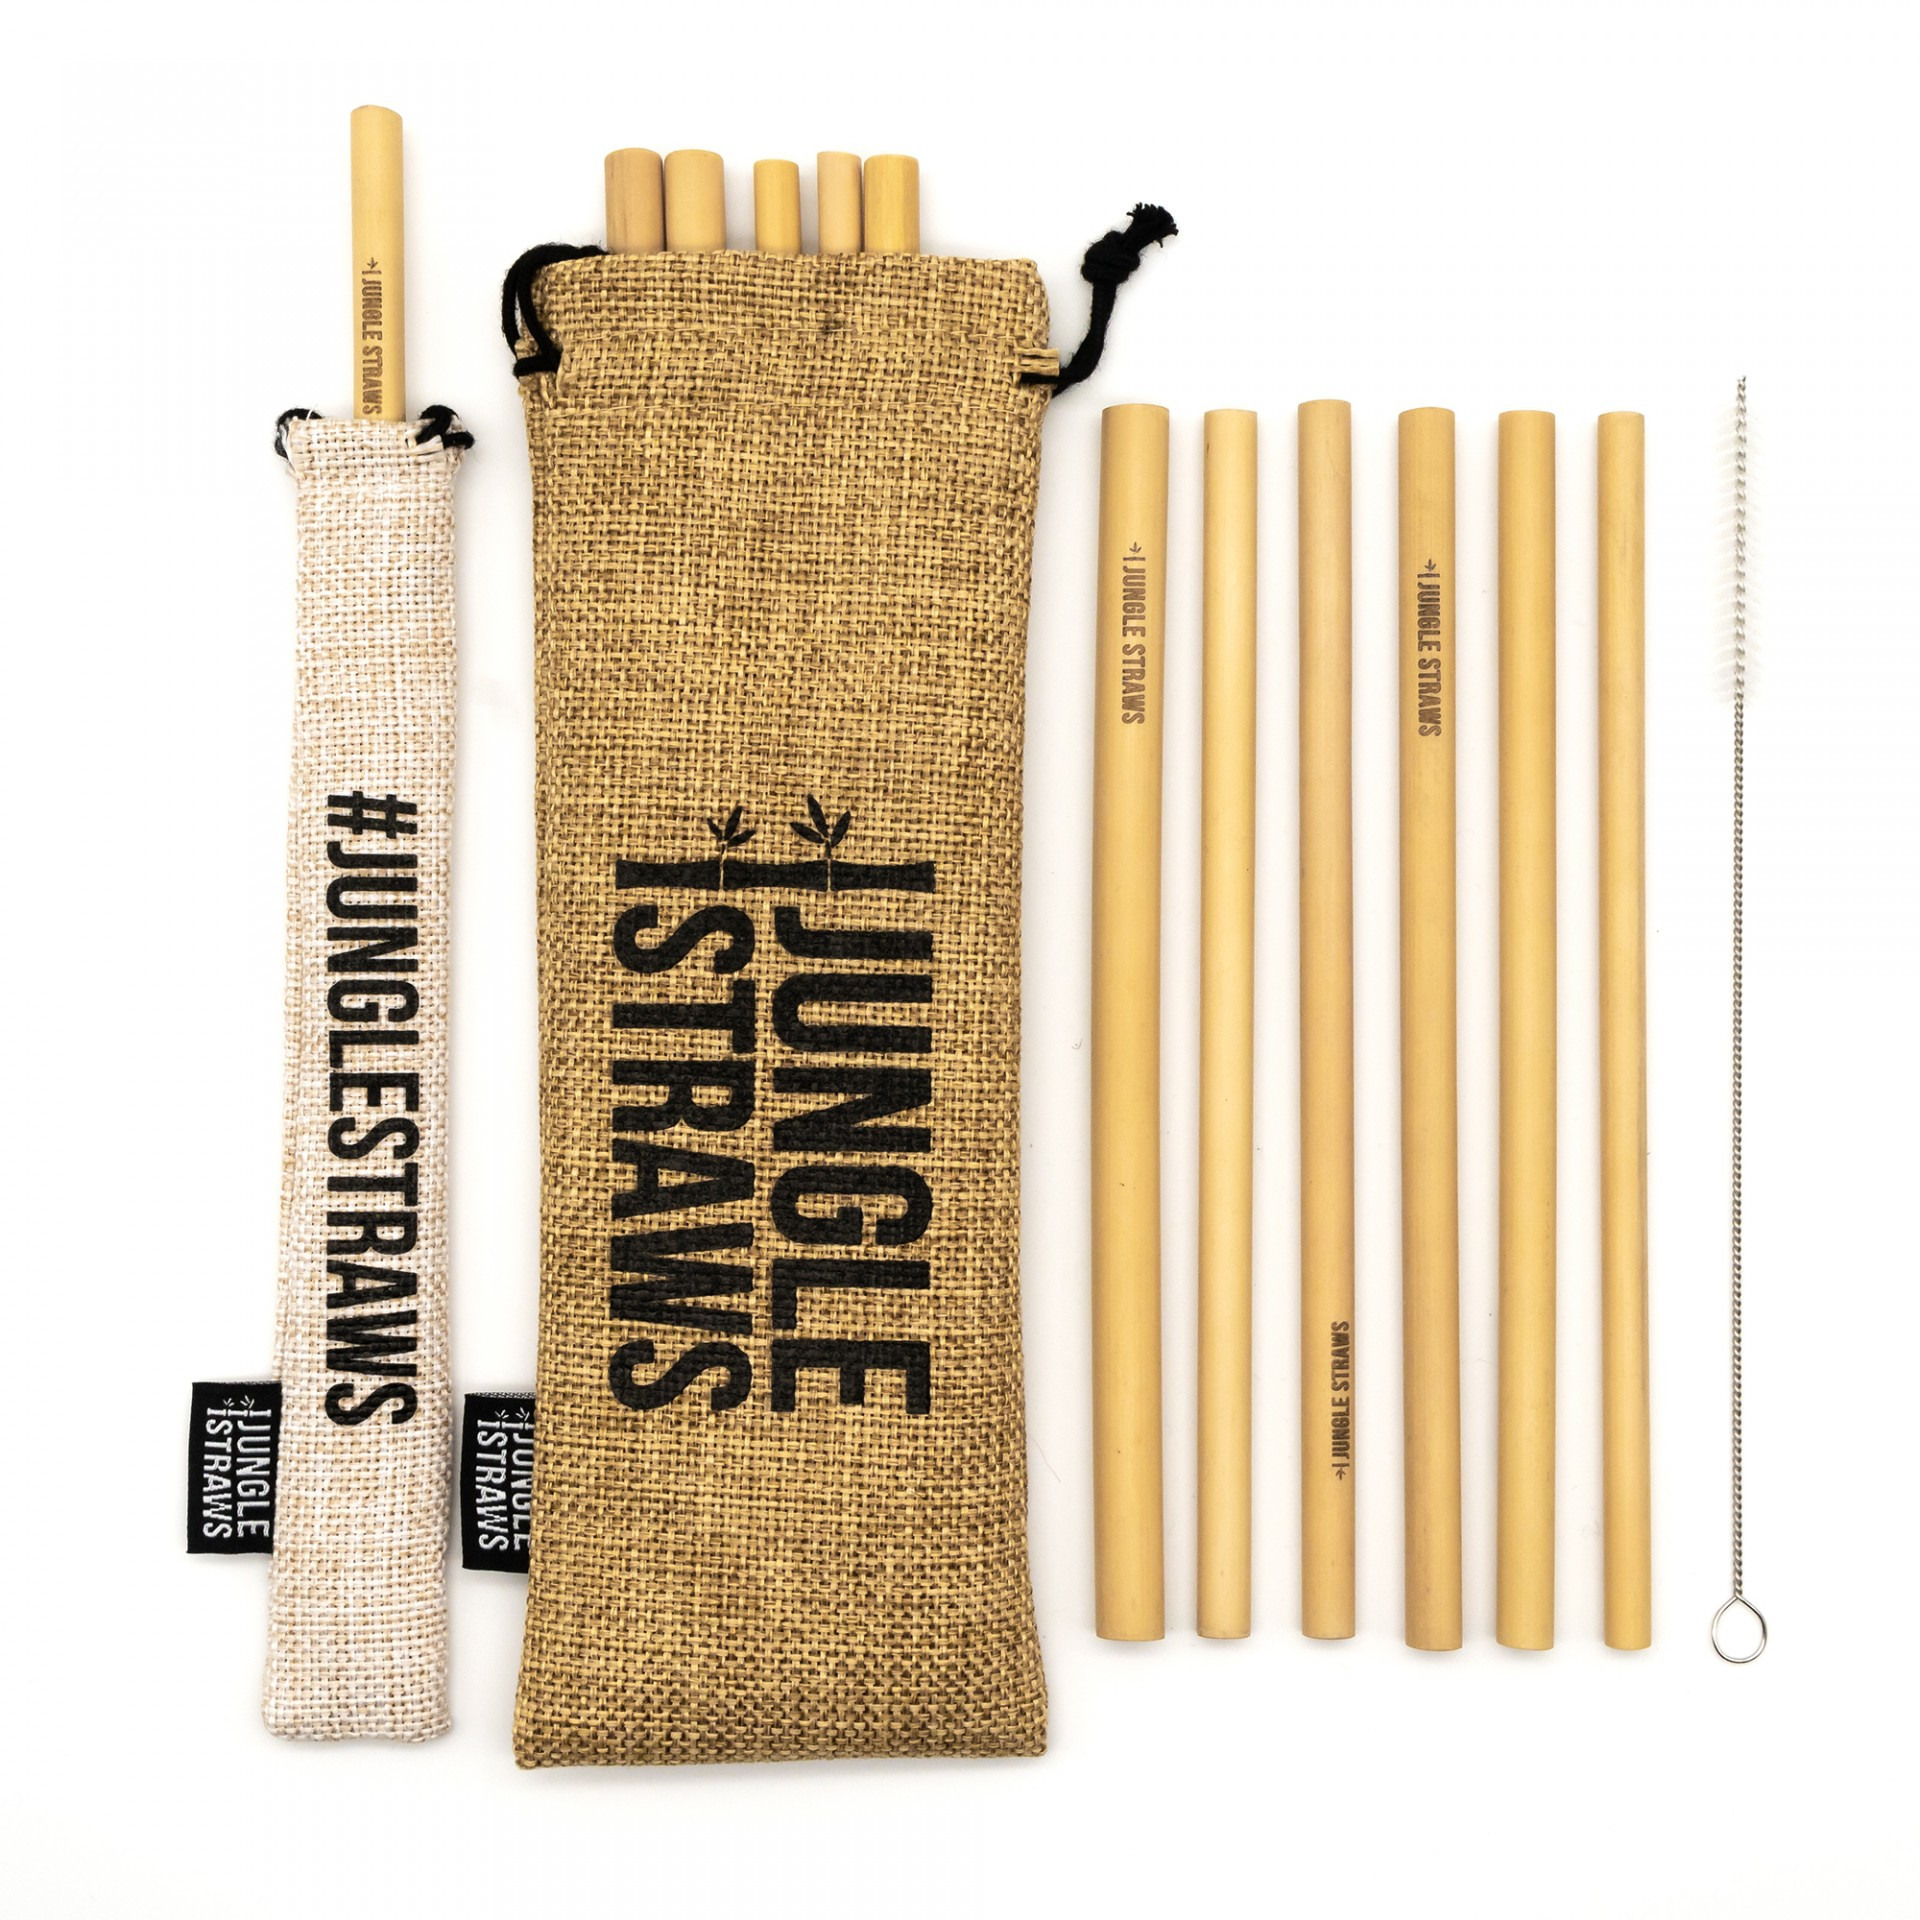 12 CANUDOS DE BAMBU NATURAL COM SACOS E ESCOVA / NATURAL BAMBOO STRAWS WITH JUTE BAG AND POUCH SET OF 12